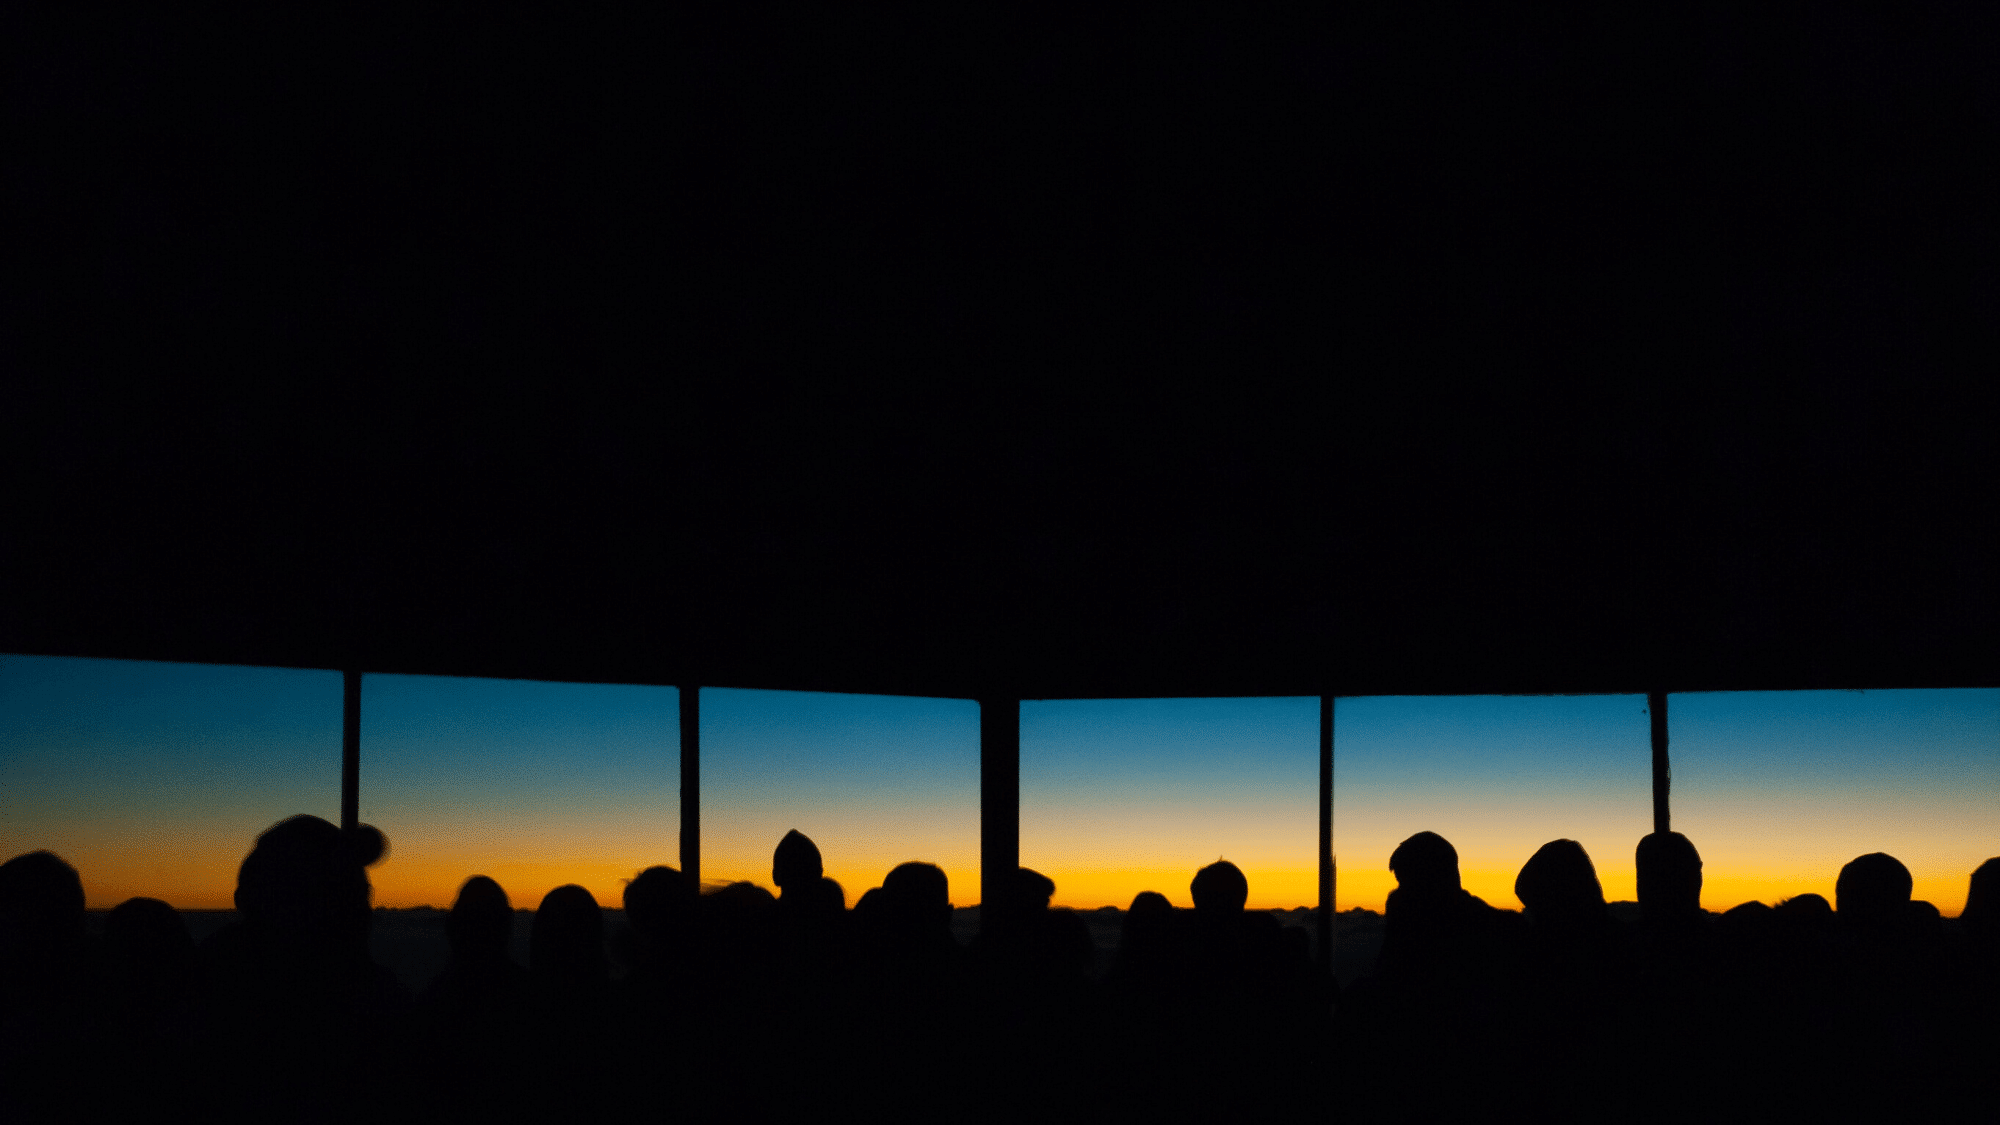 Heads silhouetted against the sunset